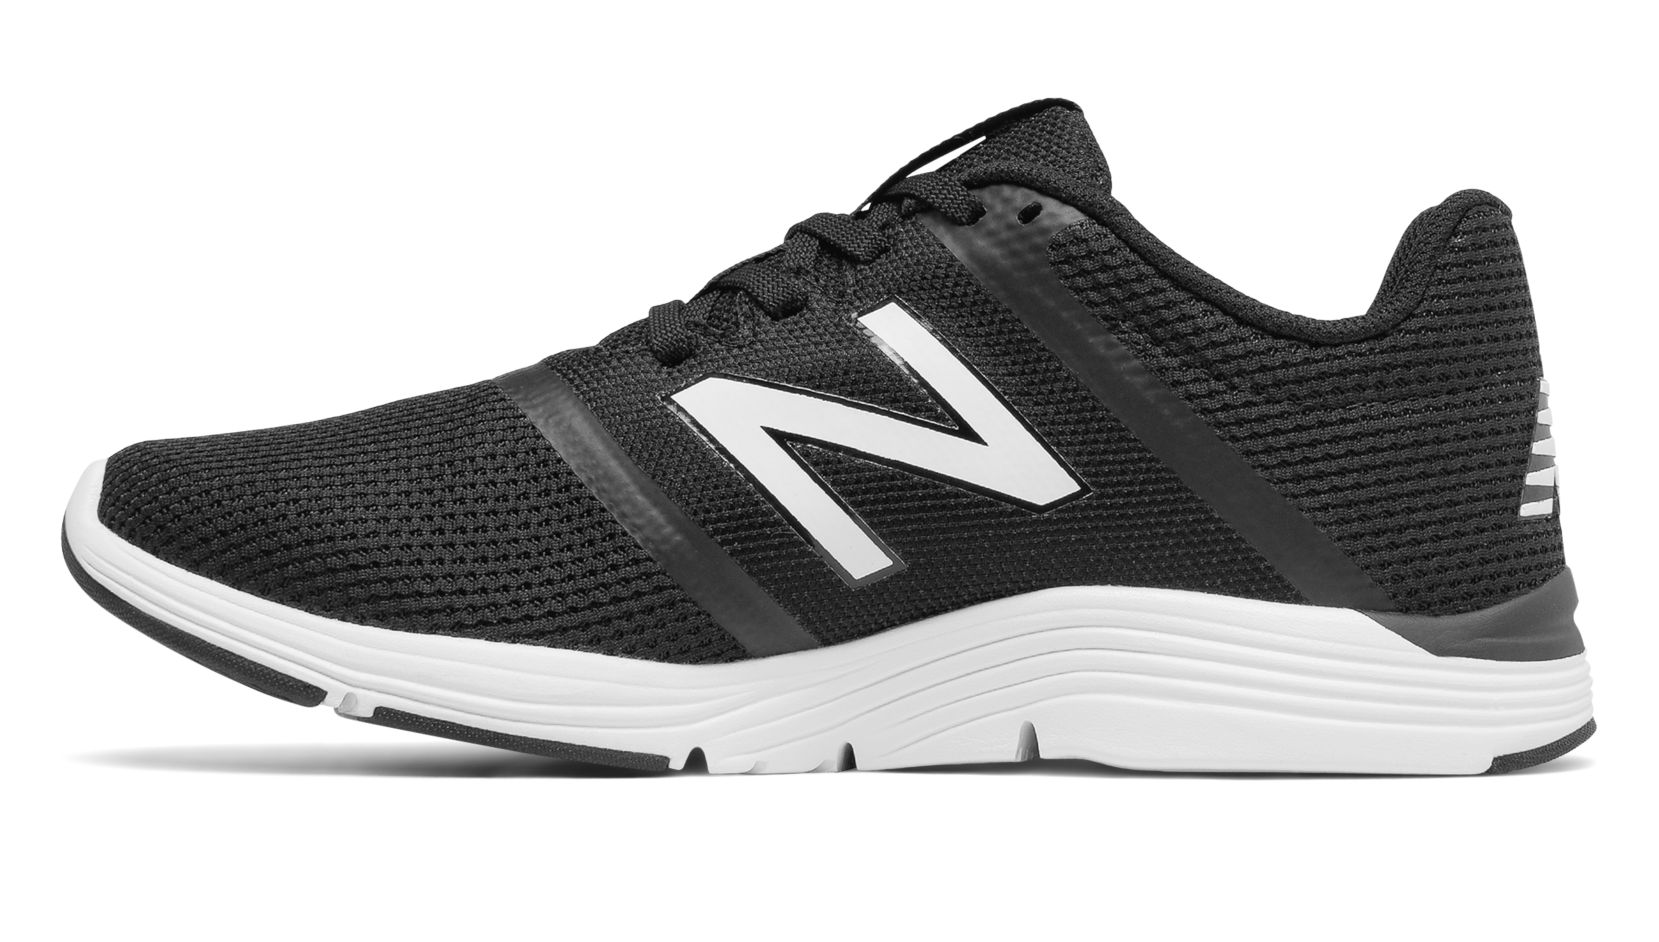 NB New Balance 818v2 Trainer, Black with White & Outerspace